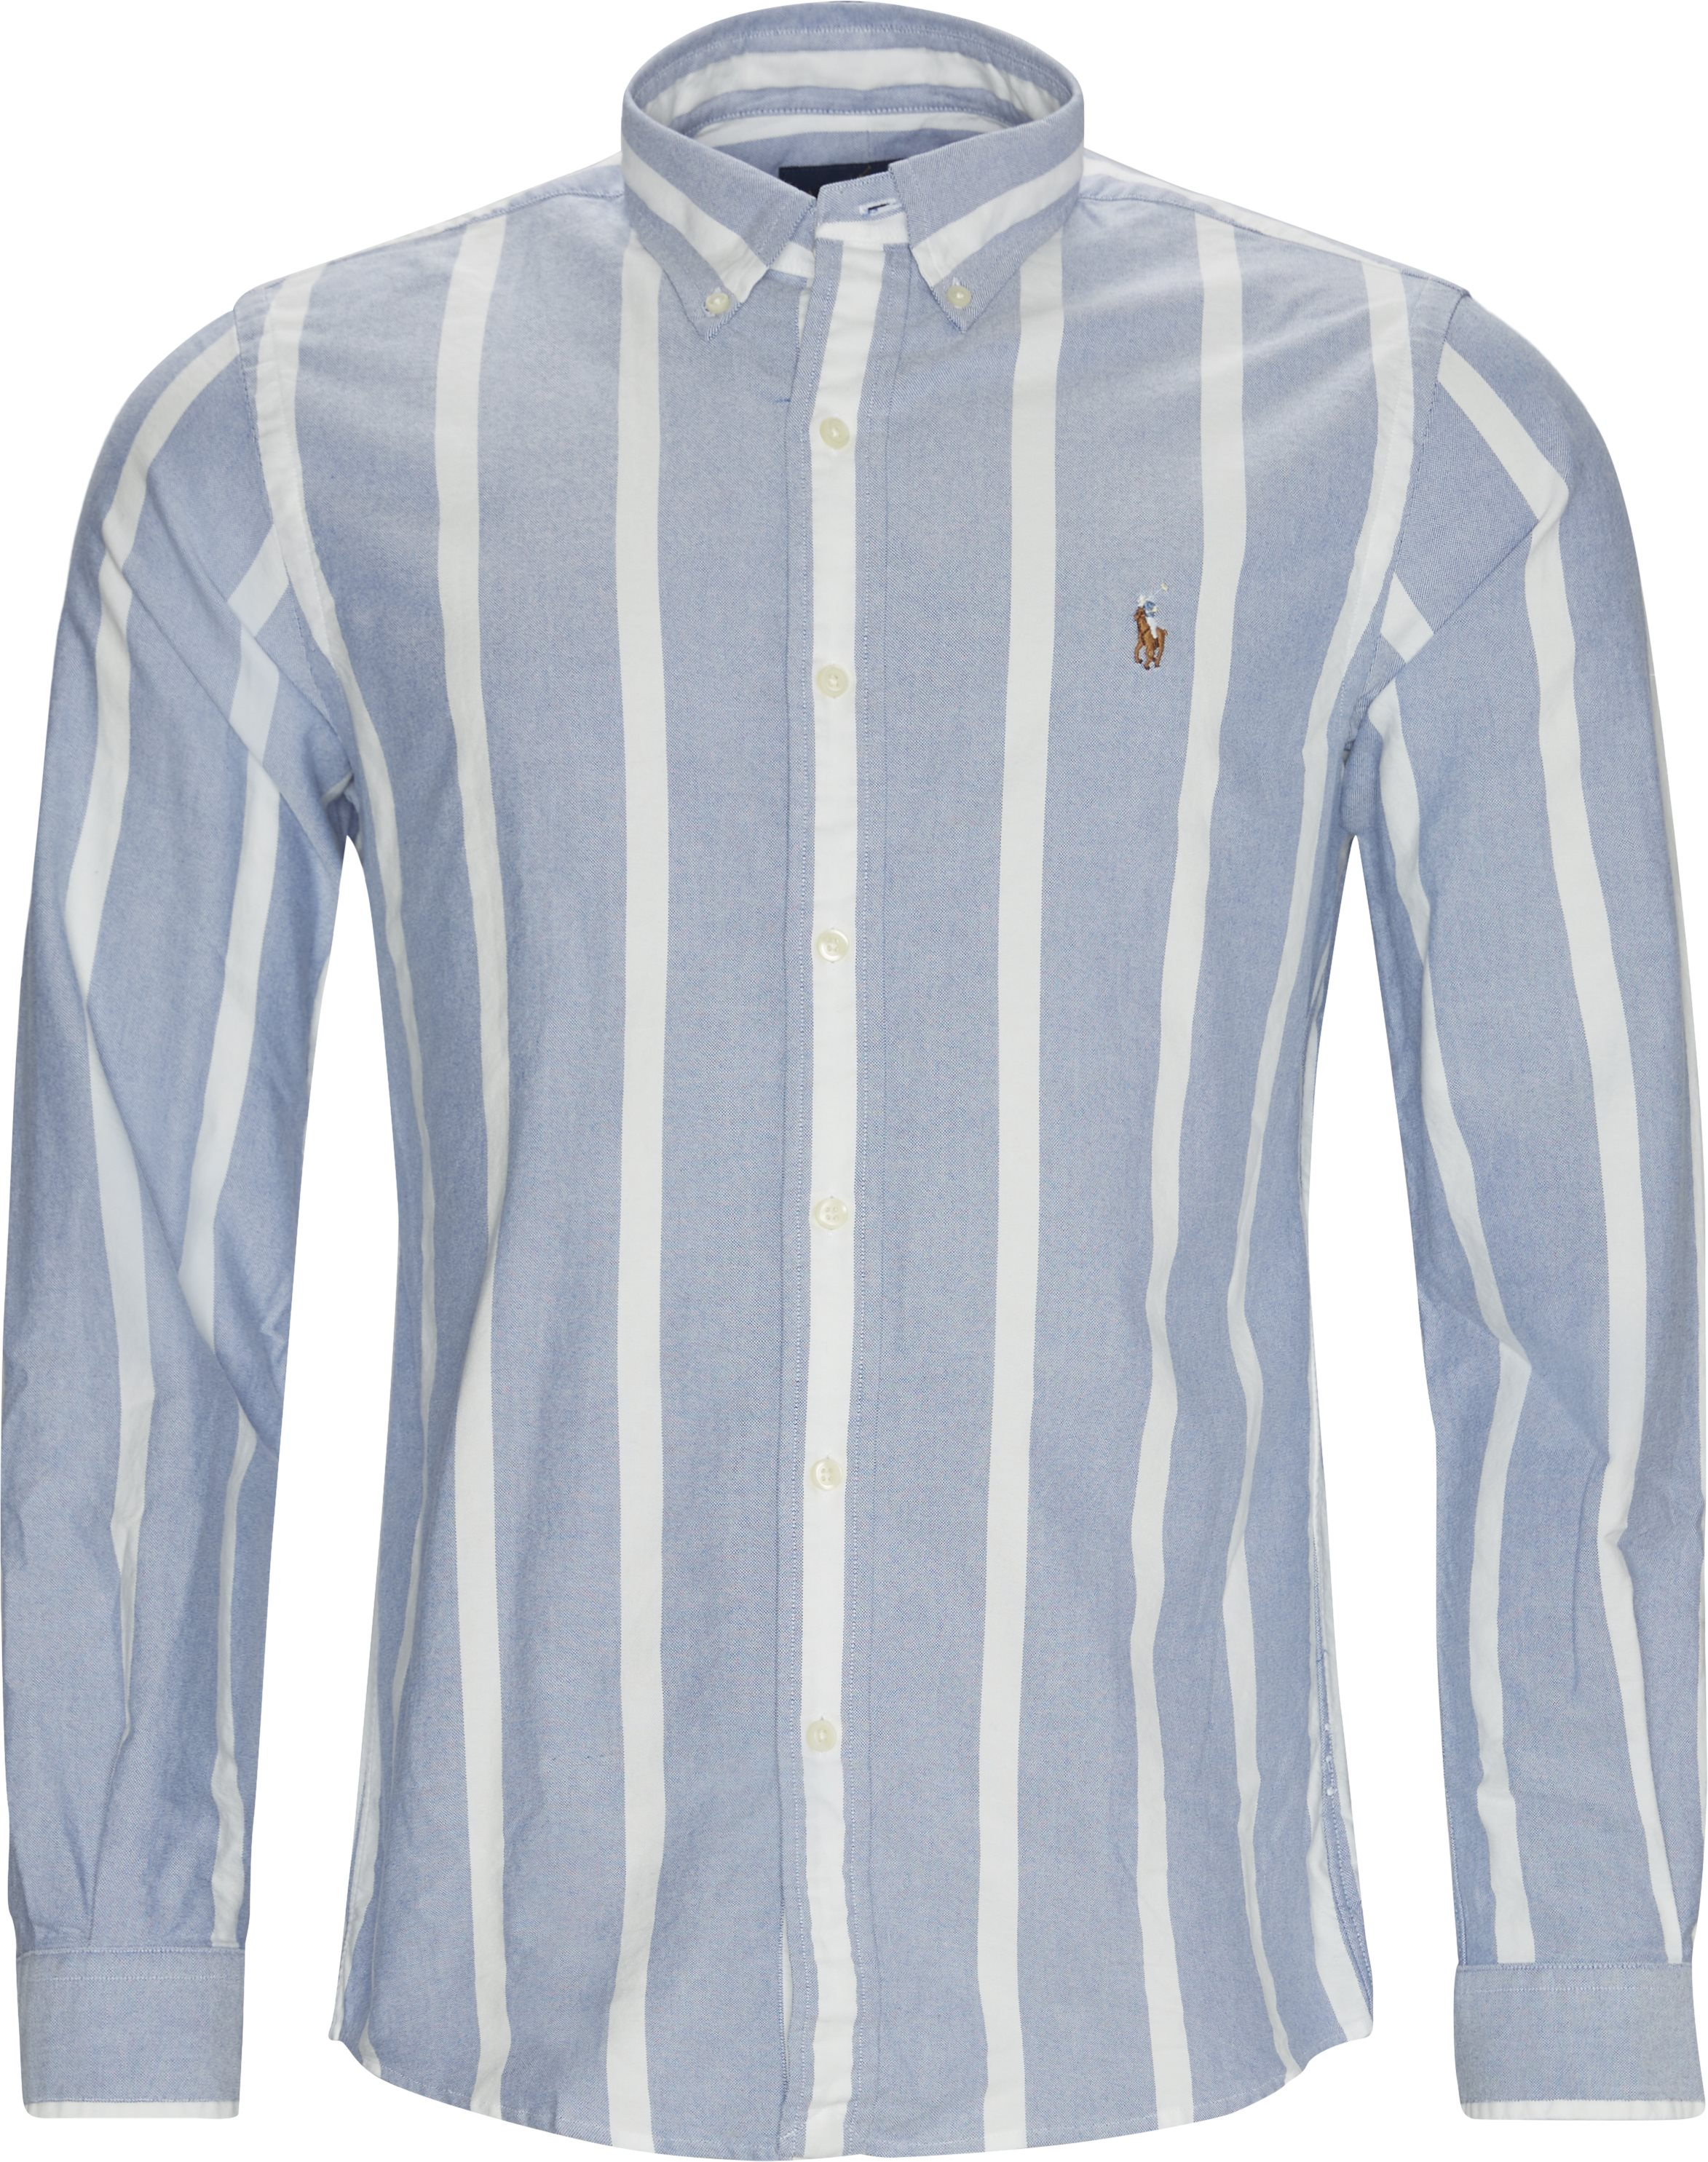 Striped Custom Fit Shirt - Skjortor - Custom fit - Blå